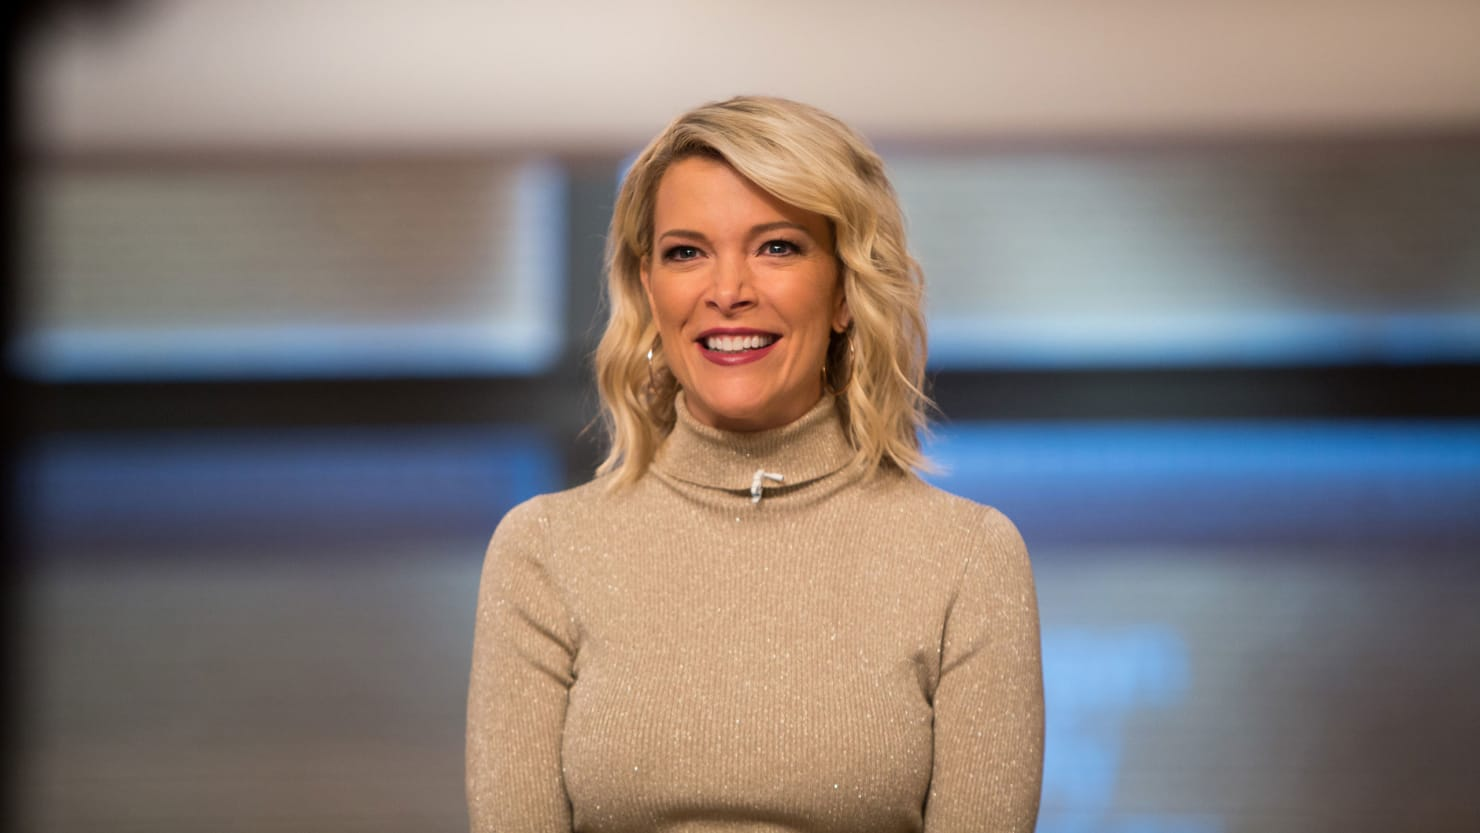 Megyn Kelly nude (77 photo), Selfie